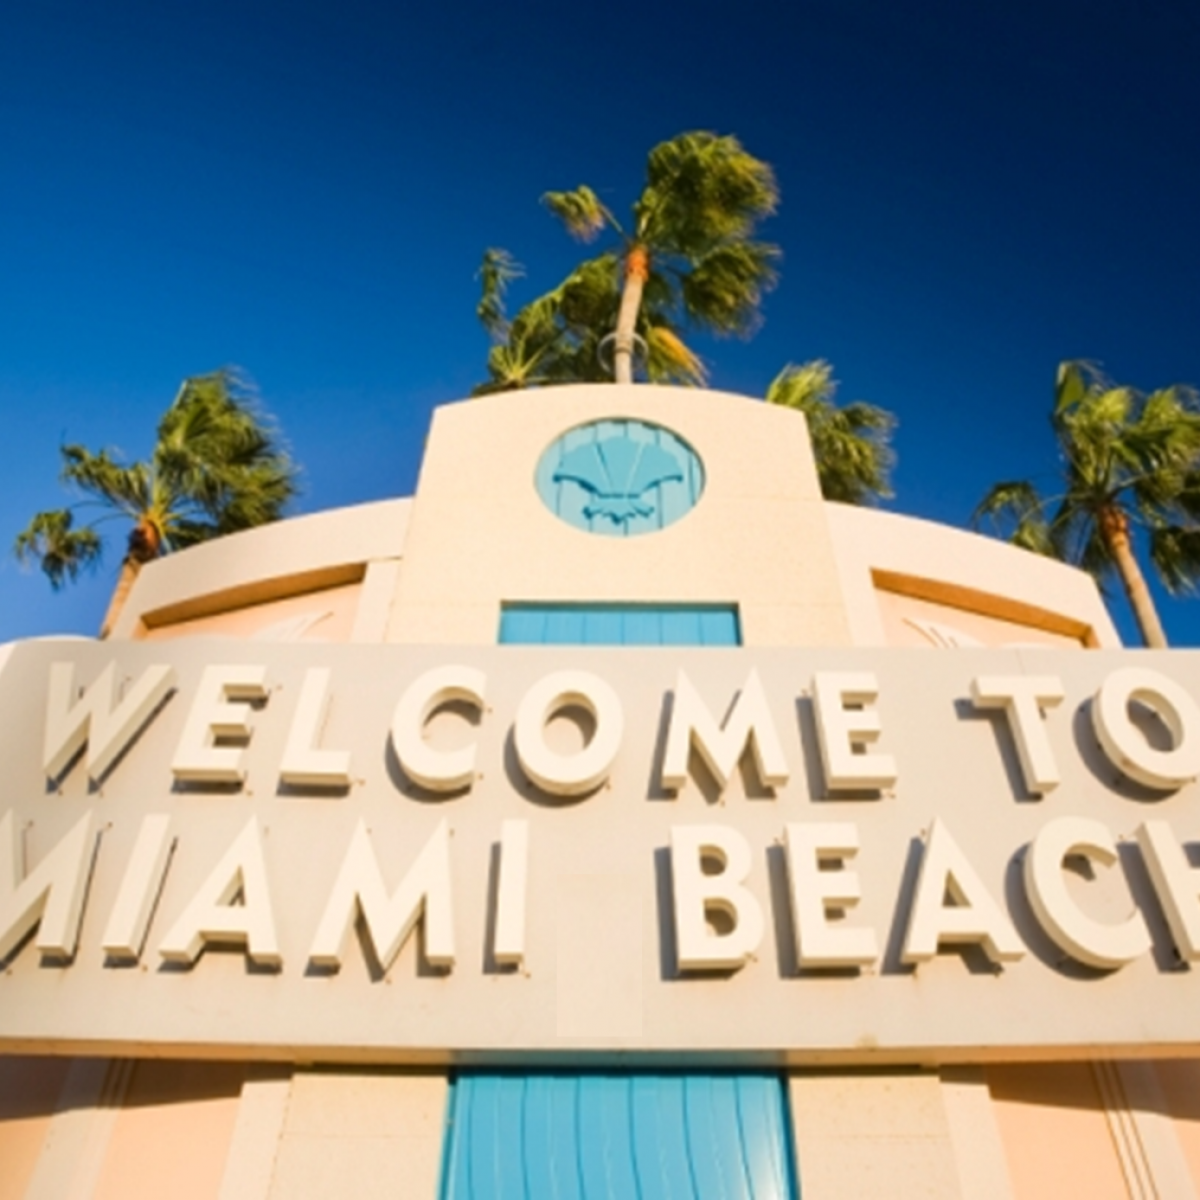 welcome-to-miami-beach-new